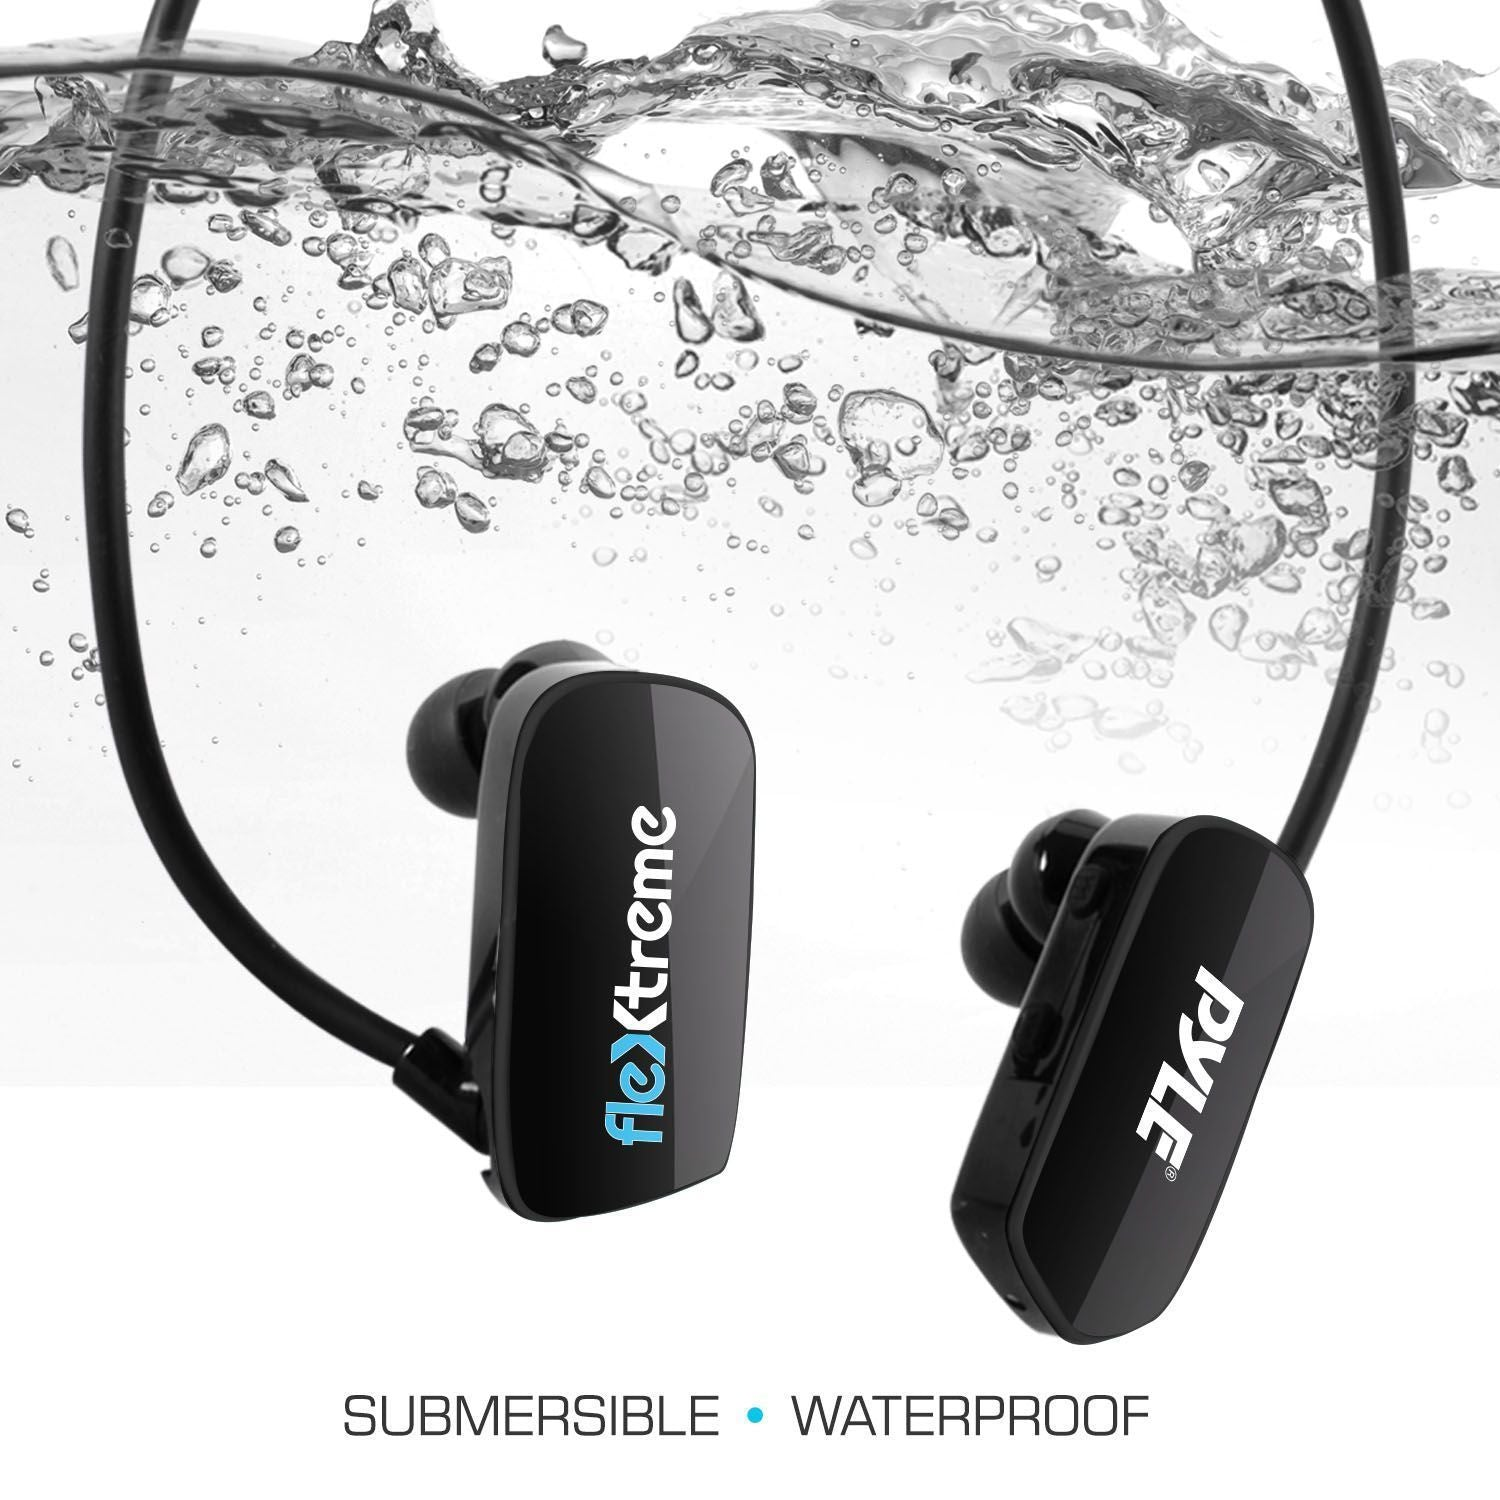 Pyle MP3 Player Bluetooth Headphone - Waterproof Swim IPX8 Flexible Wrap-Around Style Headphones Built-in Rechargeable Battery Bluetooth w/ 8GB Flash Memory & Replacement Earbuds - PSWP28BK